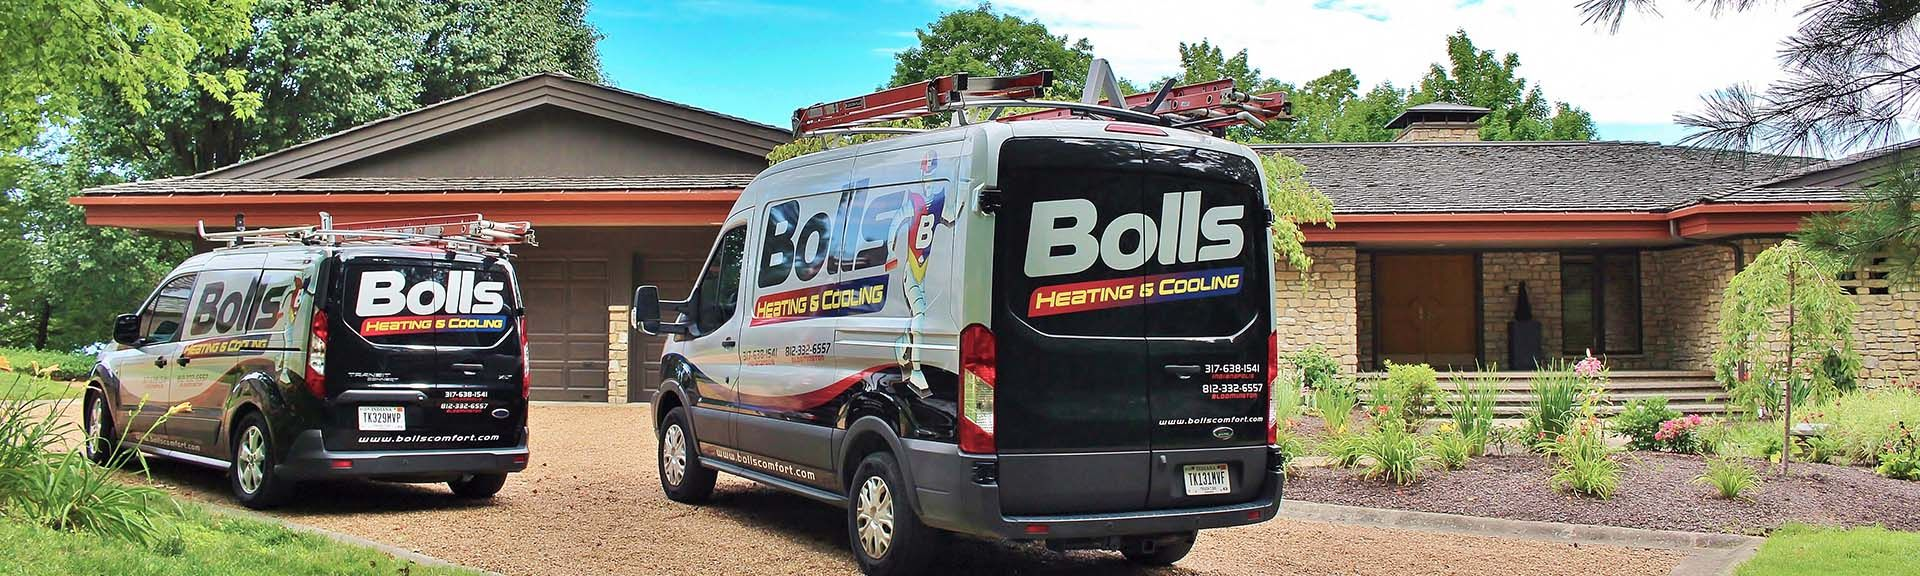 Bolls Heating And Cooling Has Been Expanding The Comfort Of The